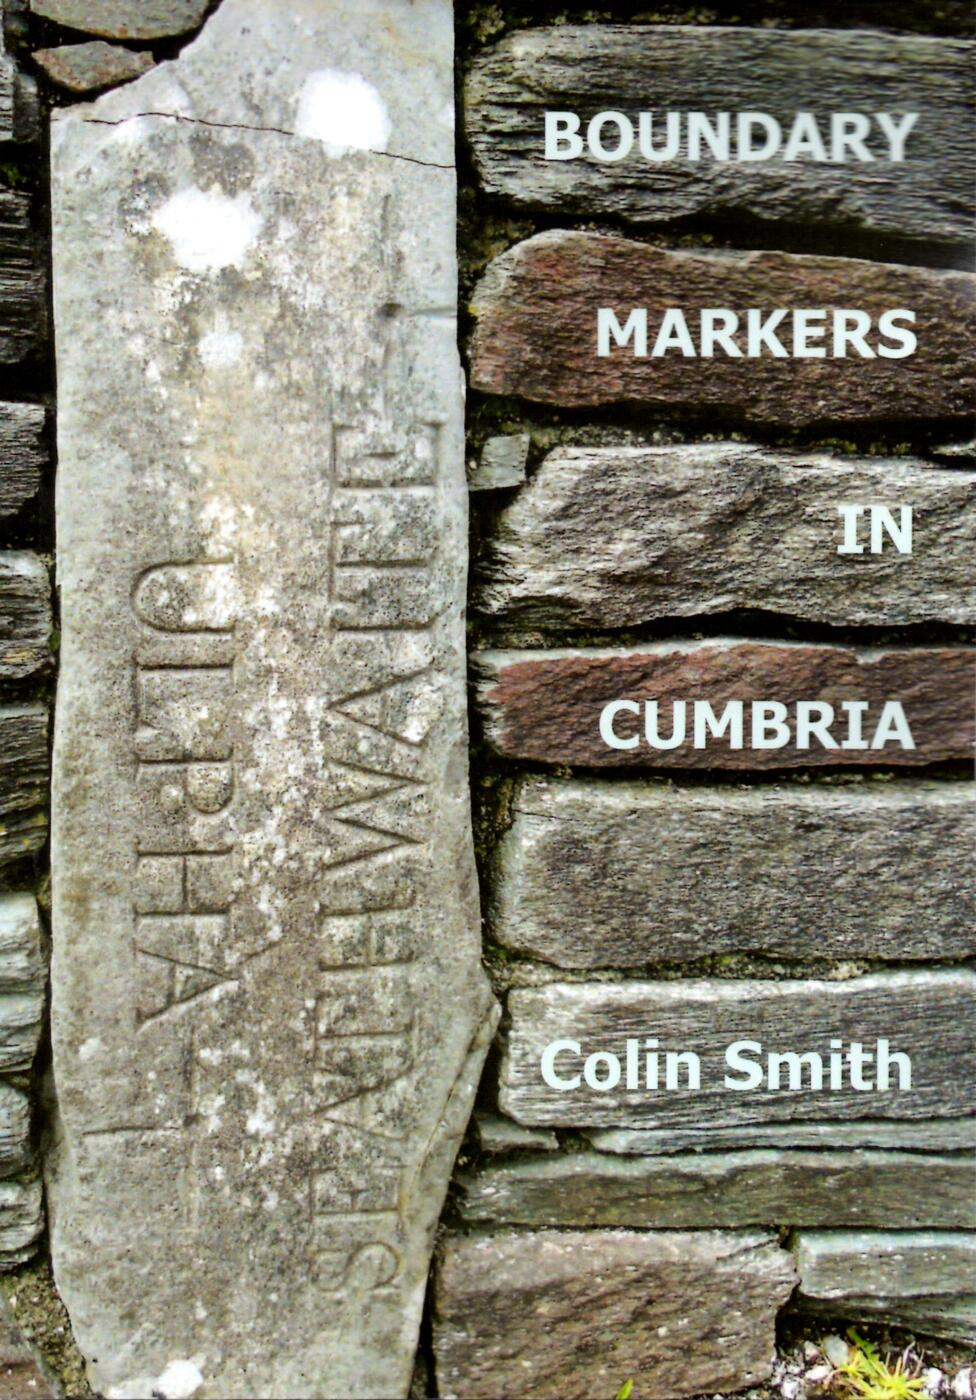 Boundary Markers In Cumbria